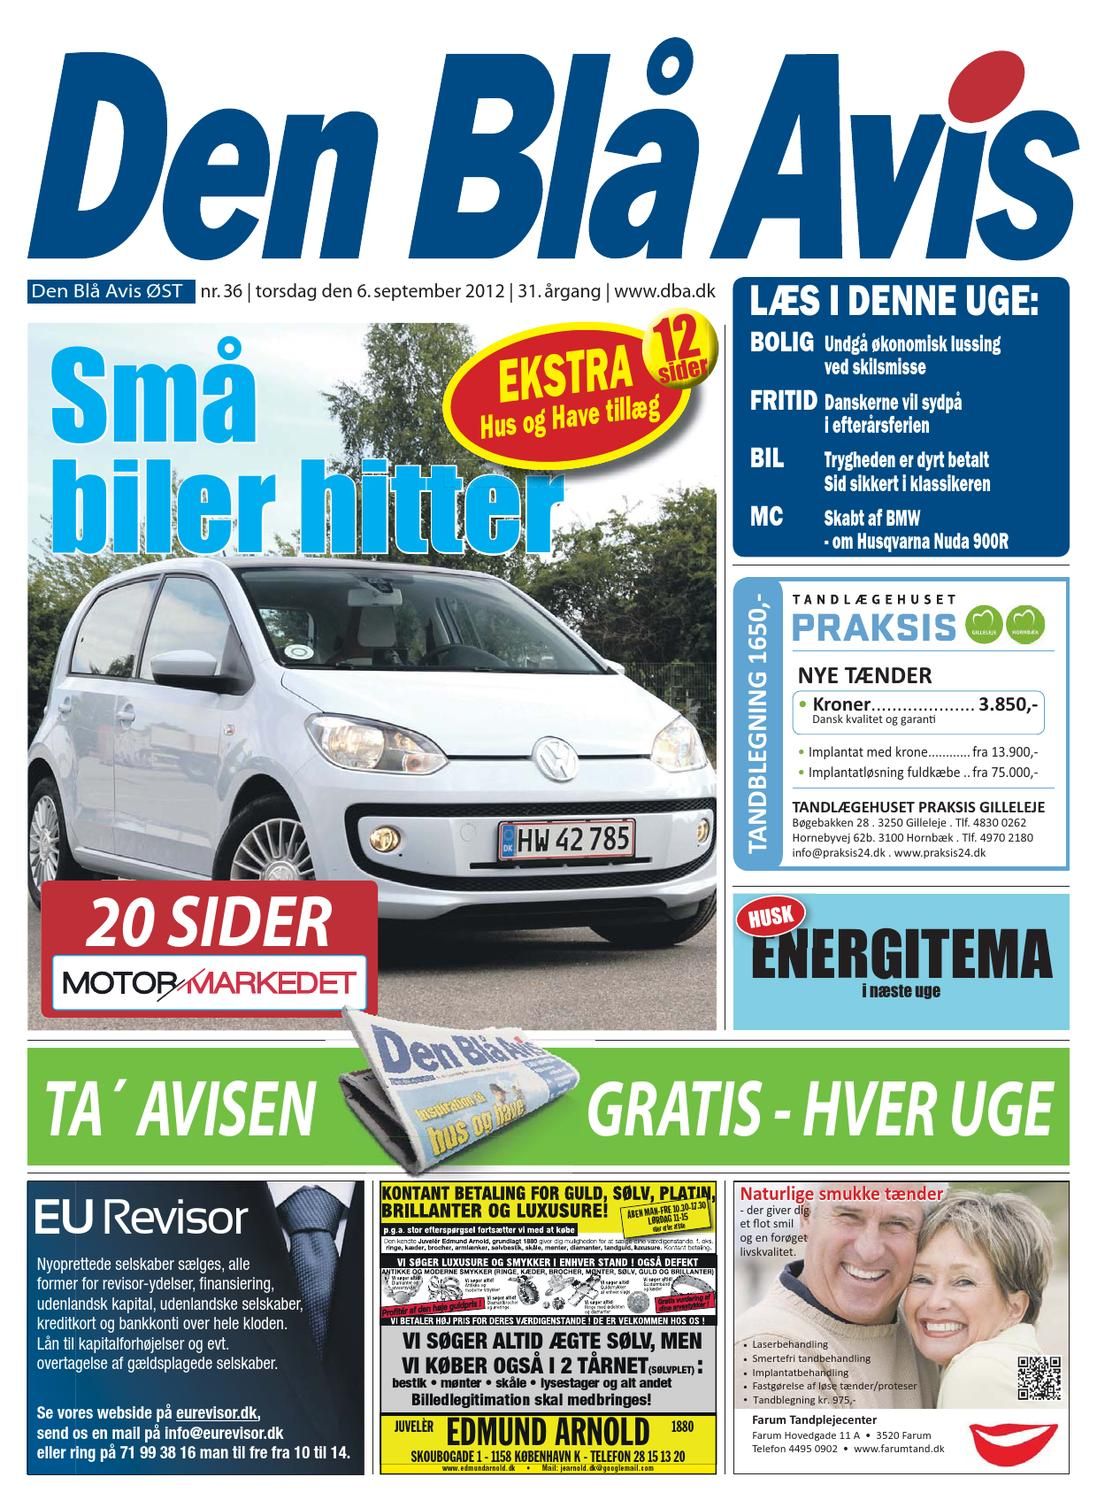 0830ae42029 Den Blå Avis - ØST - 36-2012 by Grafik DBA - issuu